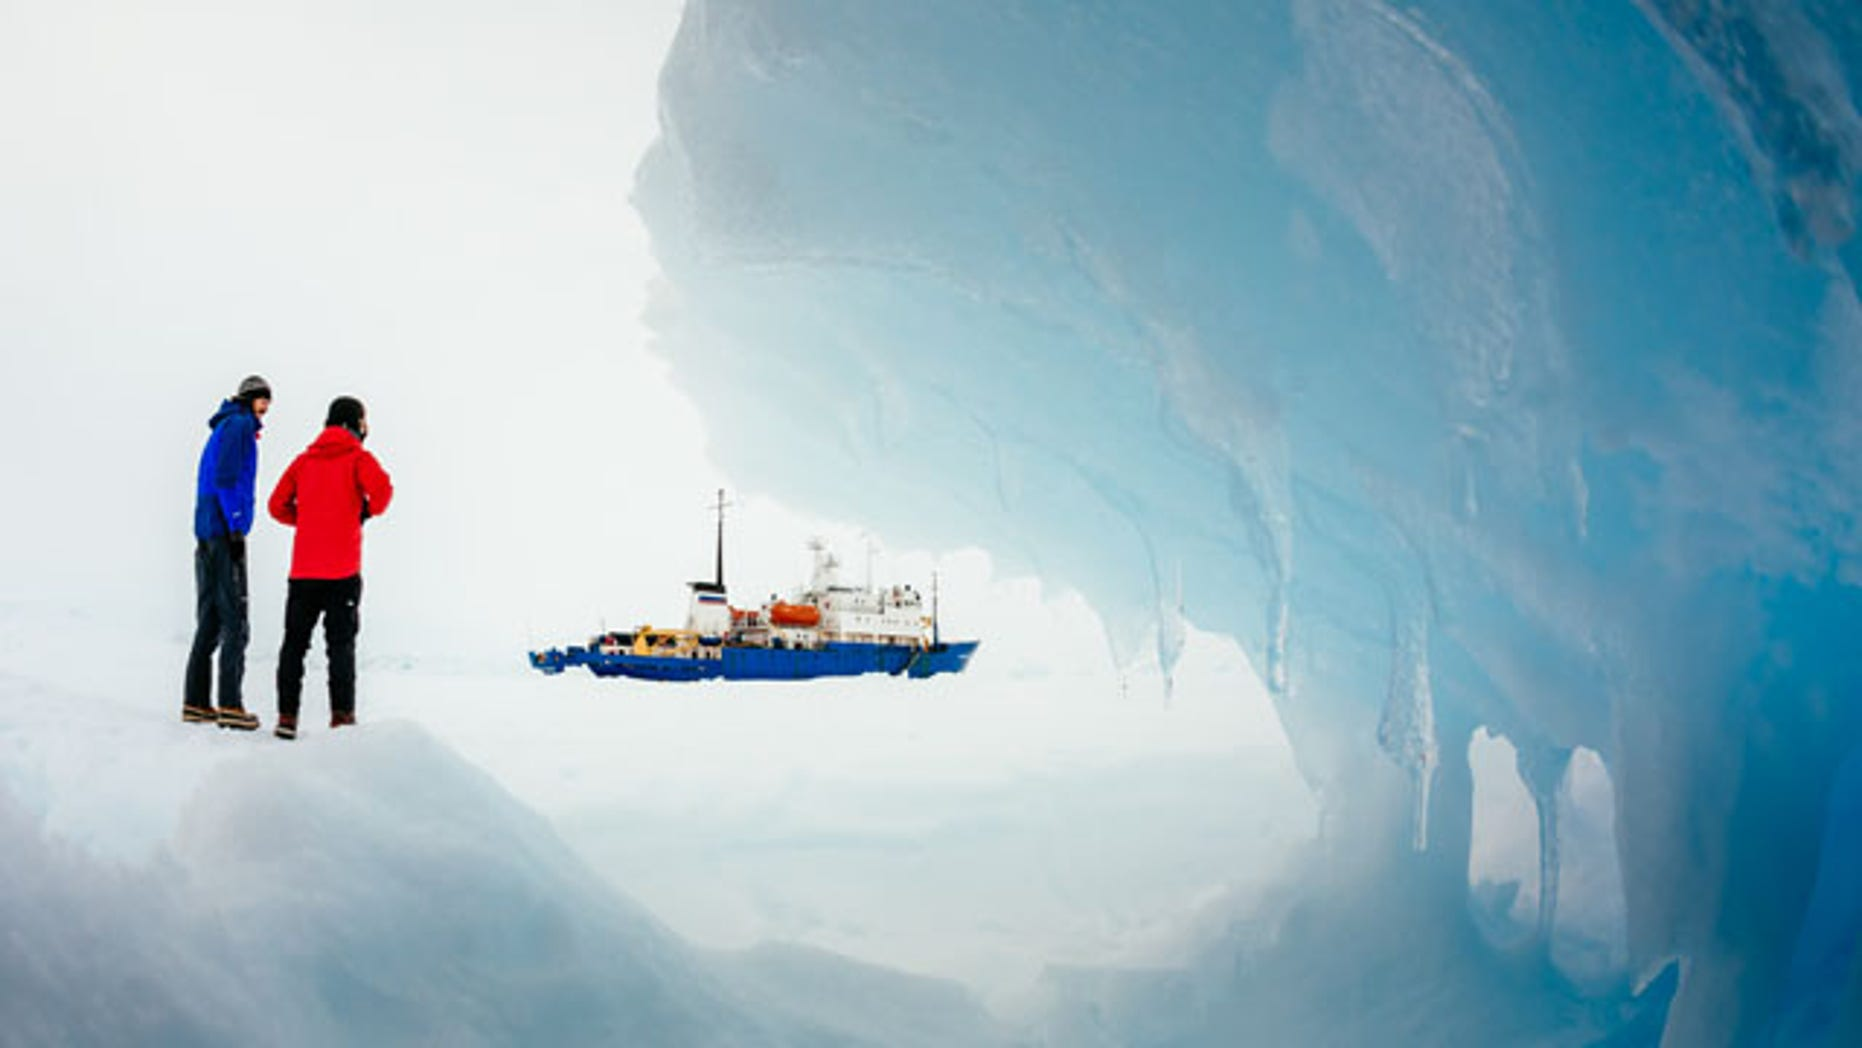 December 31, 2013: Passengers from the Russian ship MV Akademik Shokalskiy trapped in the ice 1,500 nautical miles south of Hobart, Australia, walk around the ice. (AP//Australasian Antarctic Expedition/Footloose Fotography, Andrew Peacock)